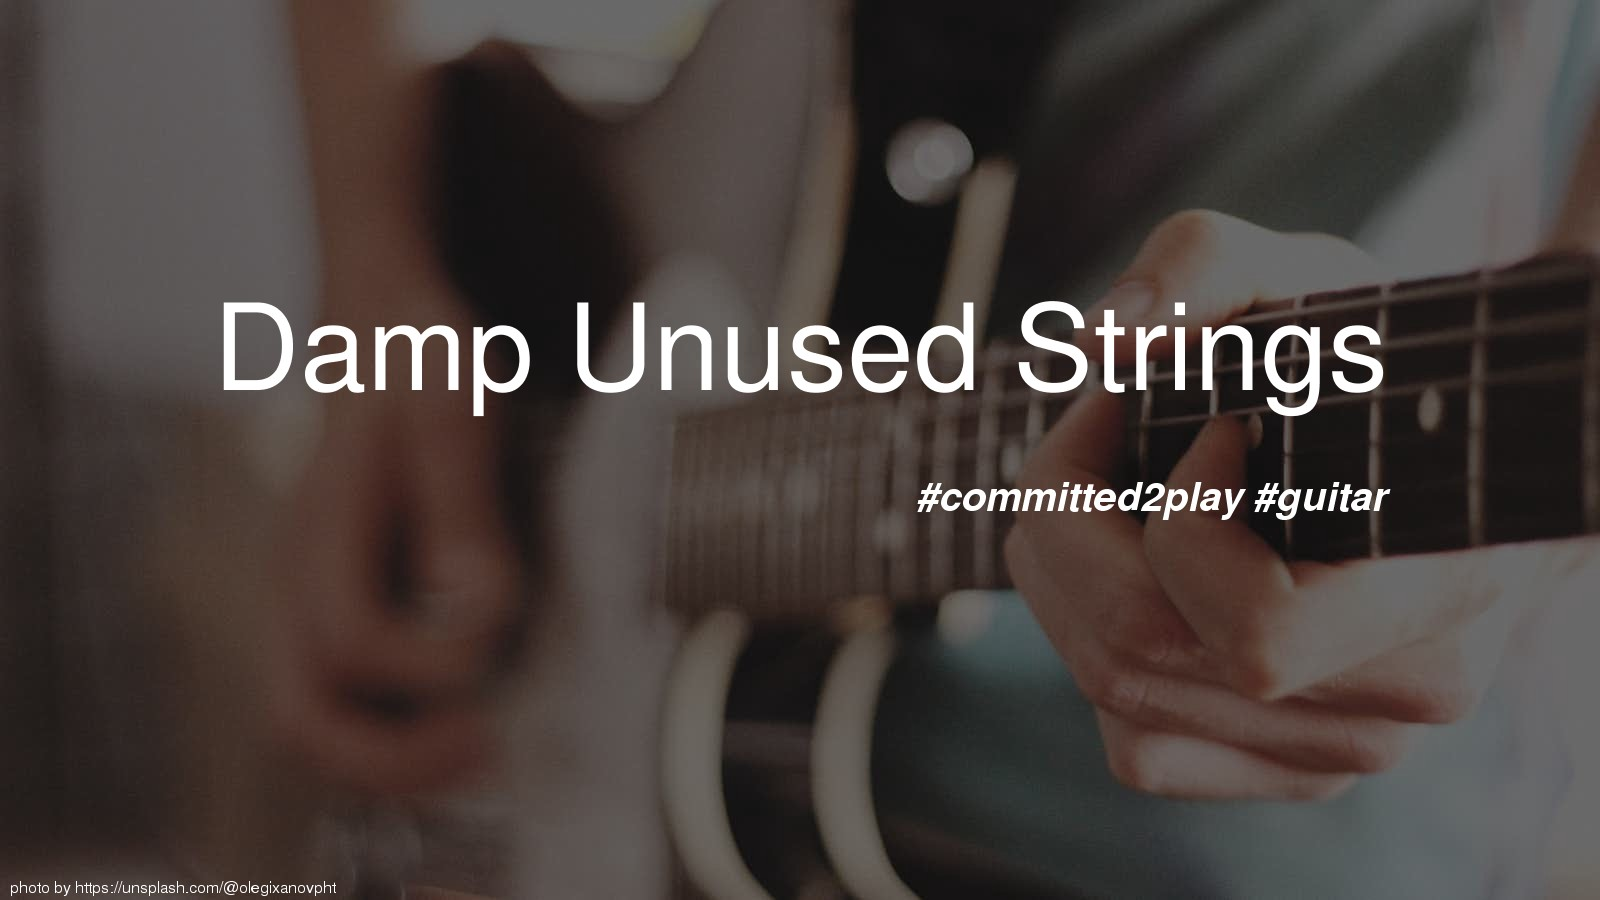 Damp Unused Strings